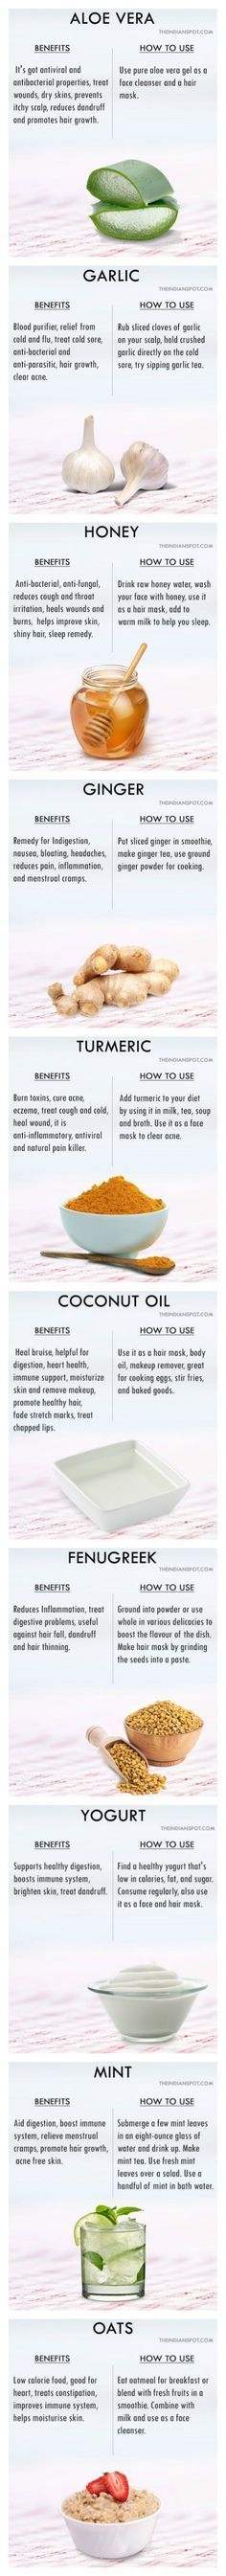 Heal your body with these Kitchen Healers...